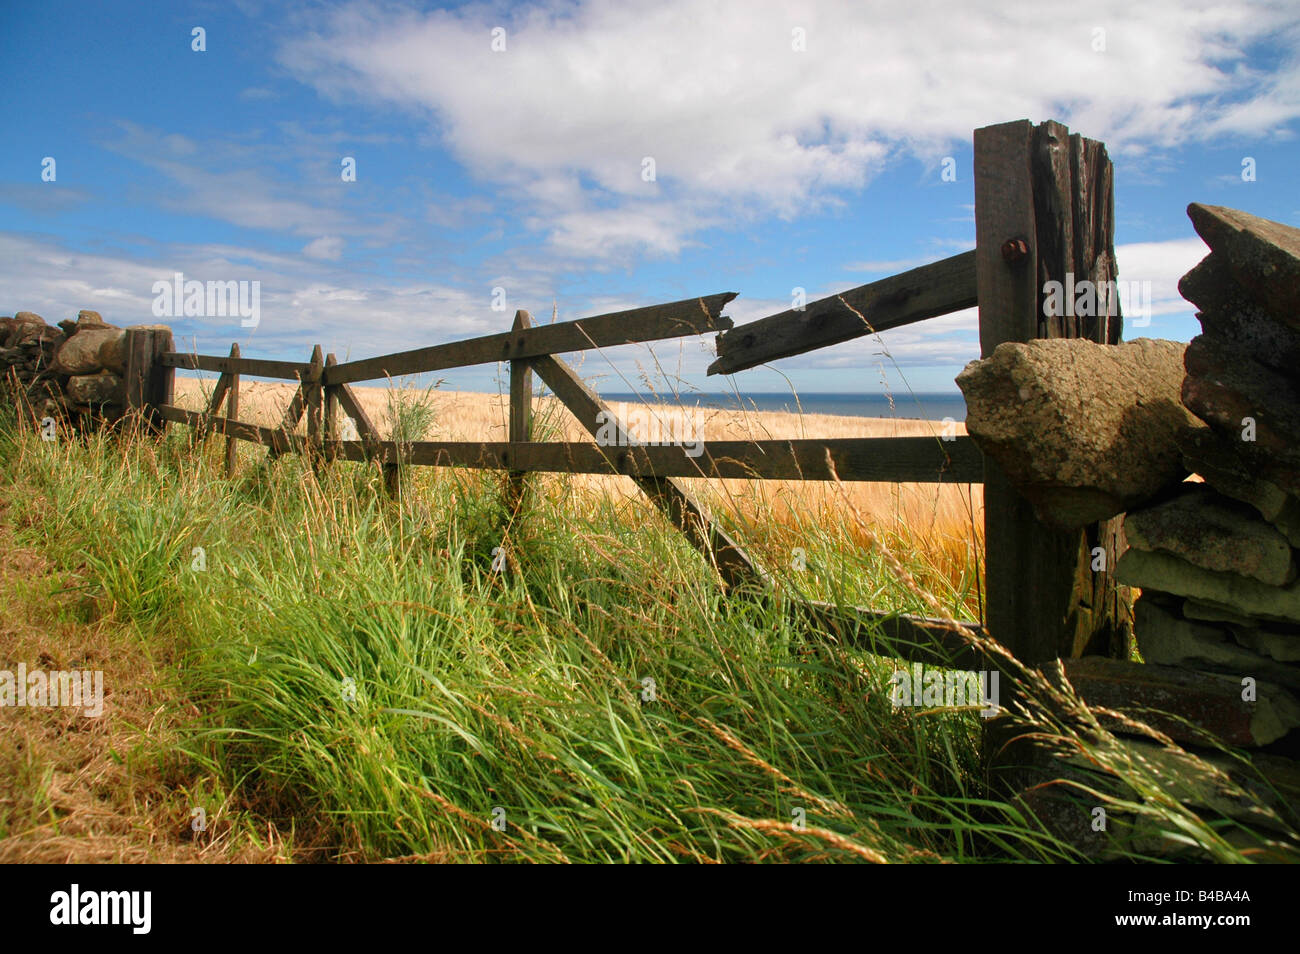 A broken wooden gate at the edge of a field of ripening barley. - Stock Image